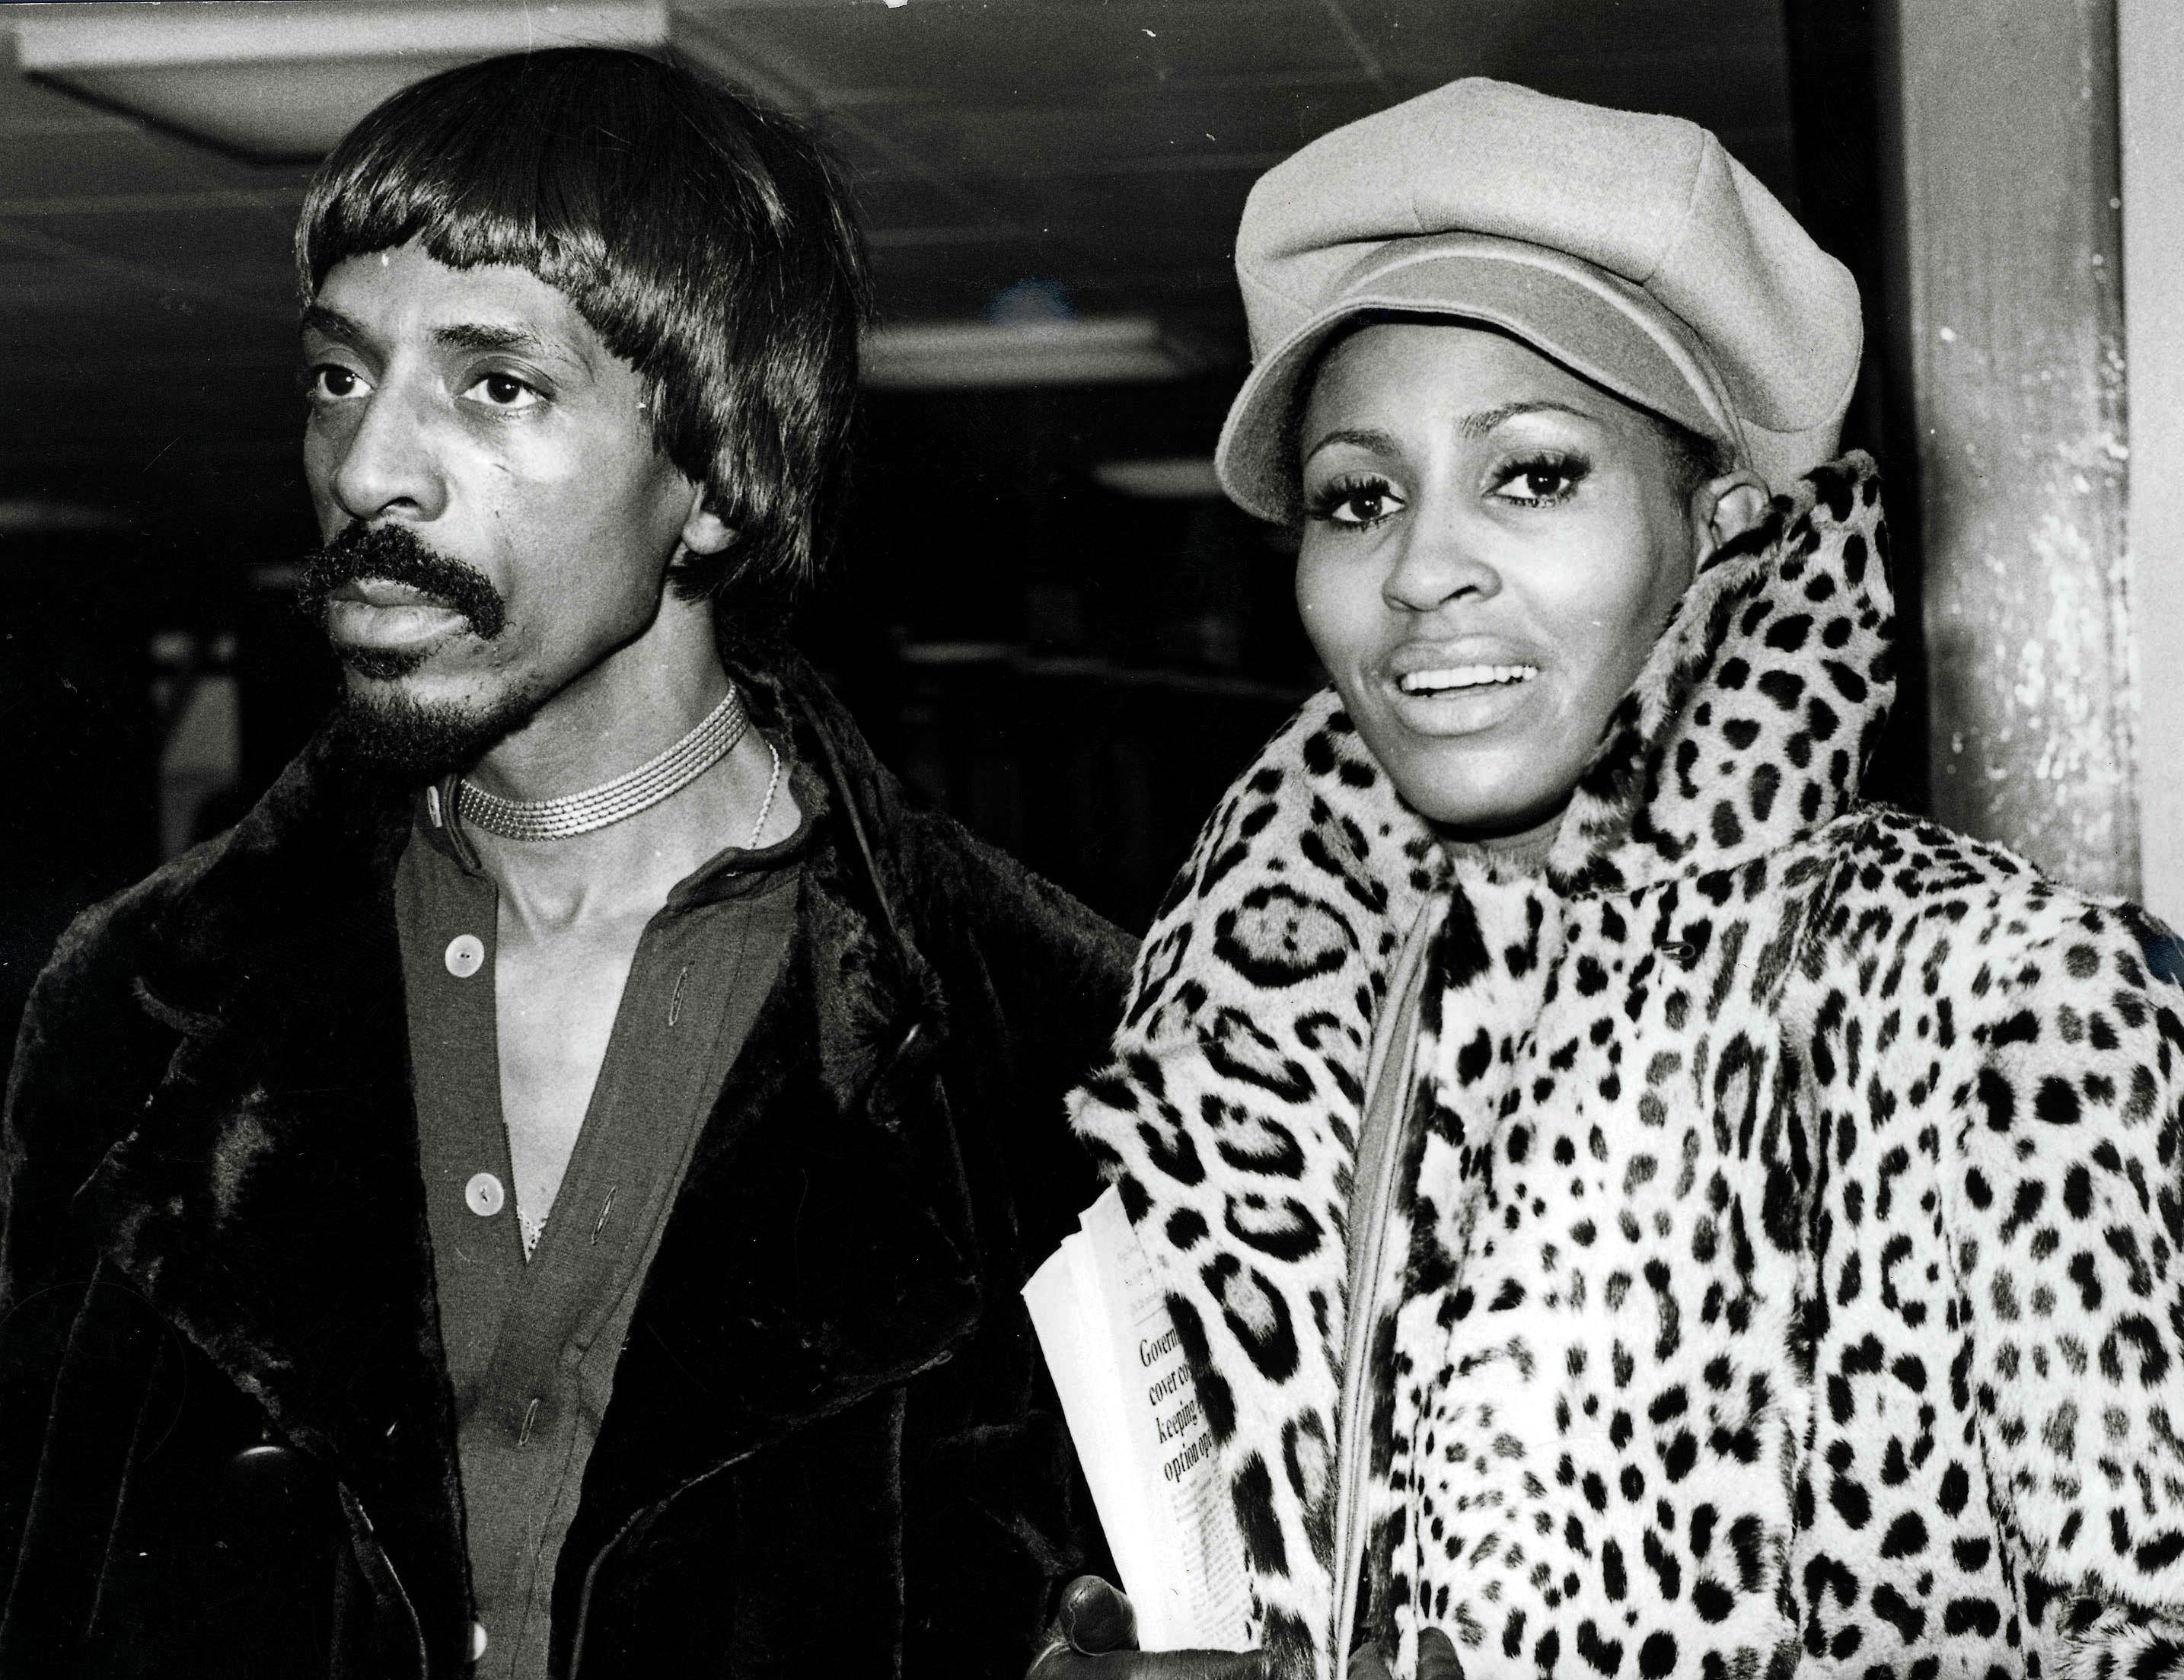 Ike Turner | Known people - famous people news and biographies